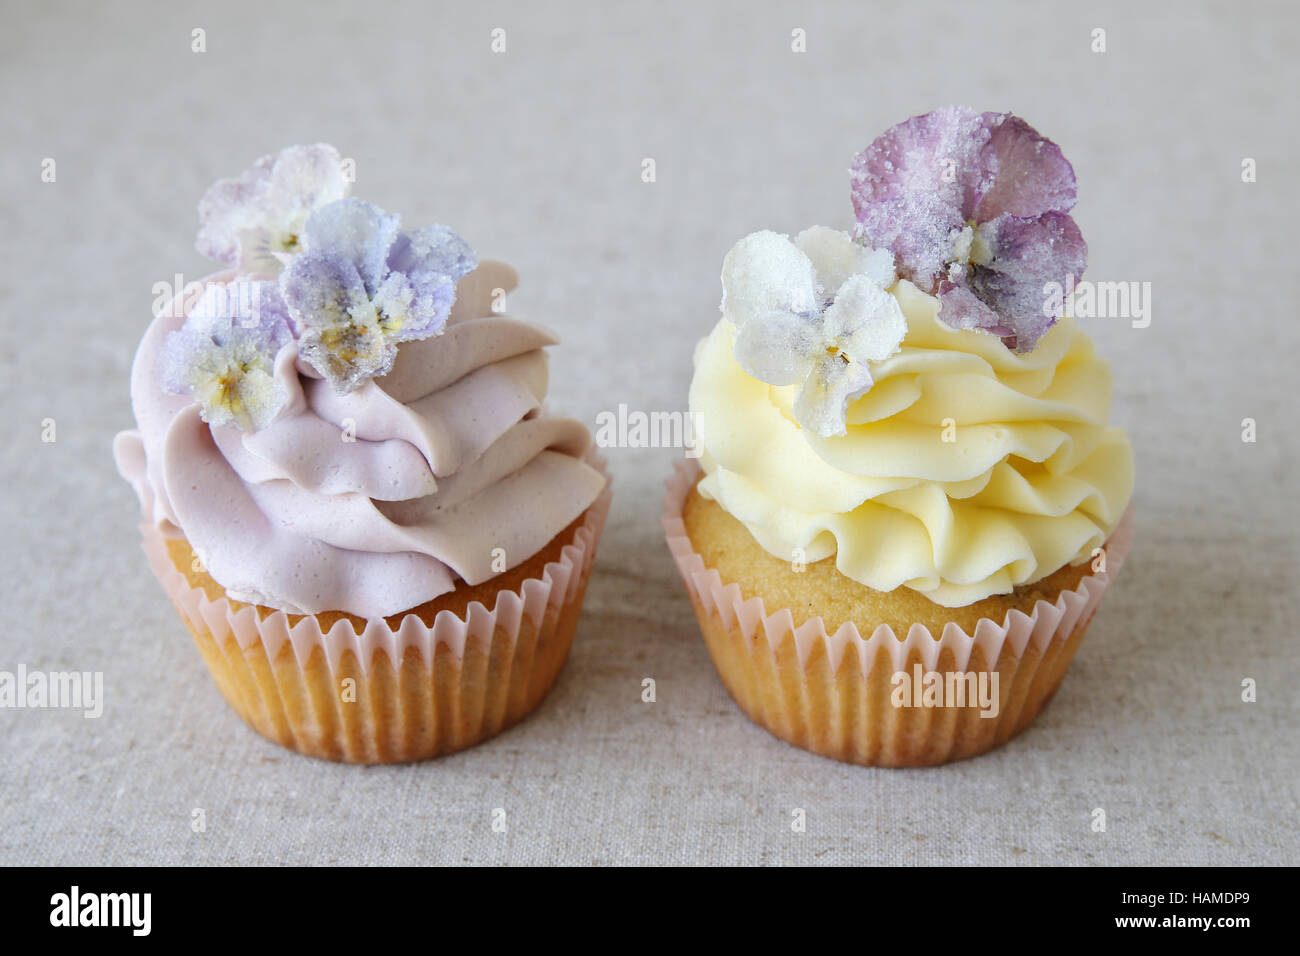 Purple and yellow cupcakes with sugared edible flowers on linen background - Stock Image